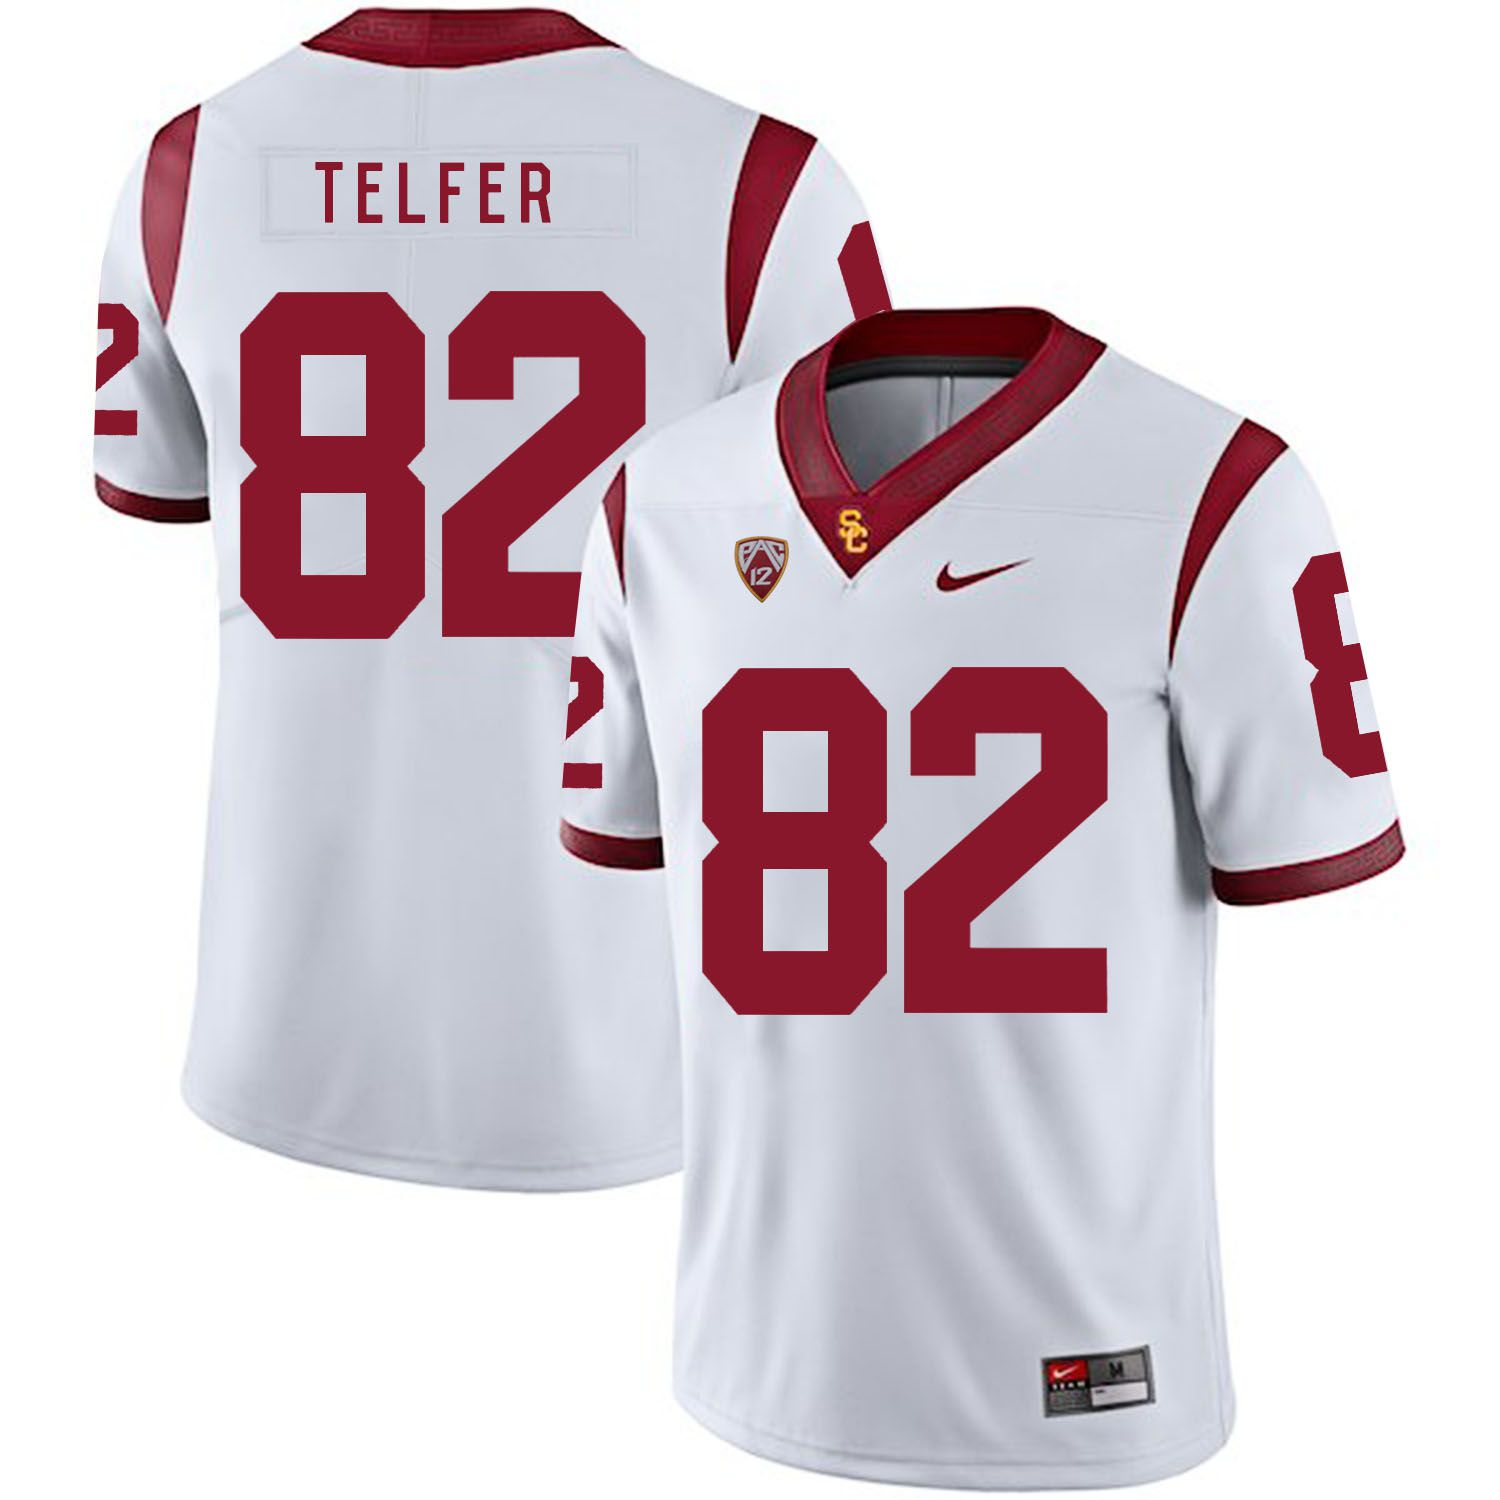 Men USC Trojans 82 Telfer White Customized NCAA Jerseys